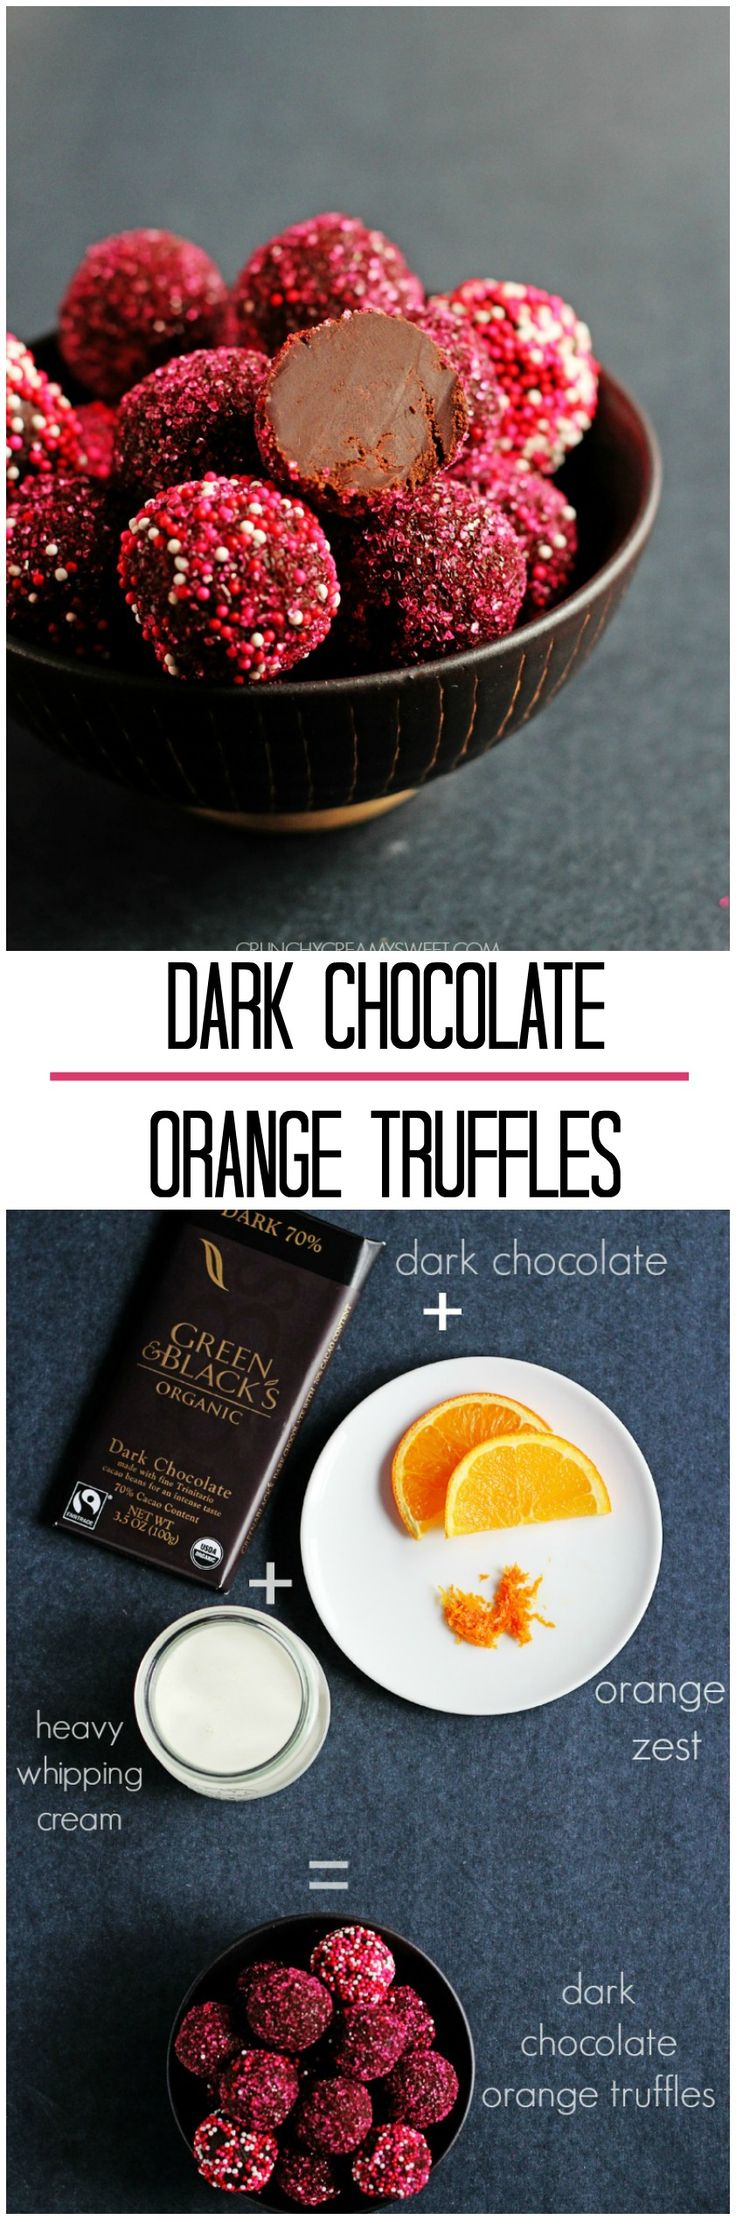 3 Ingredient Dark Chocolate Orange Truffles #dessert #chocolate @crunchycreamysw